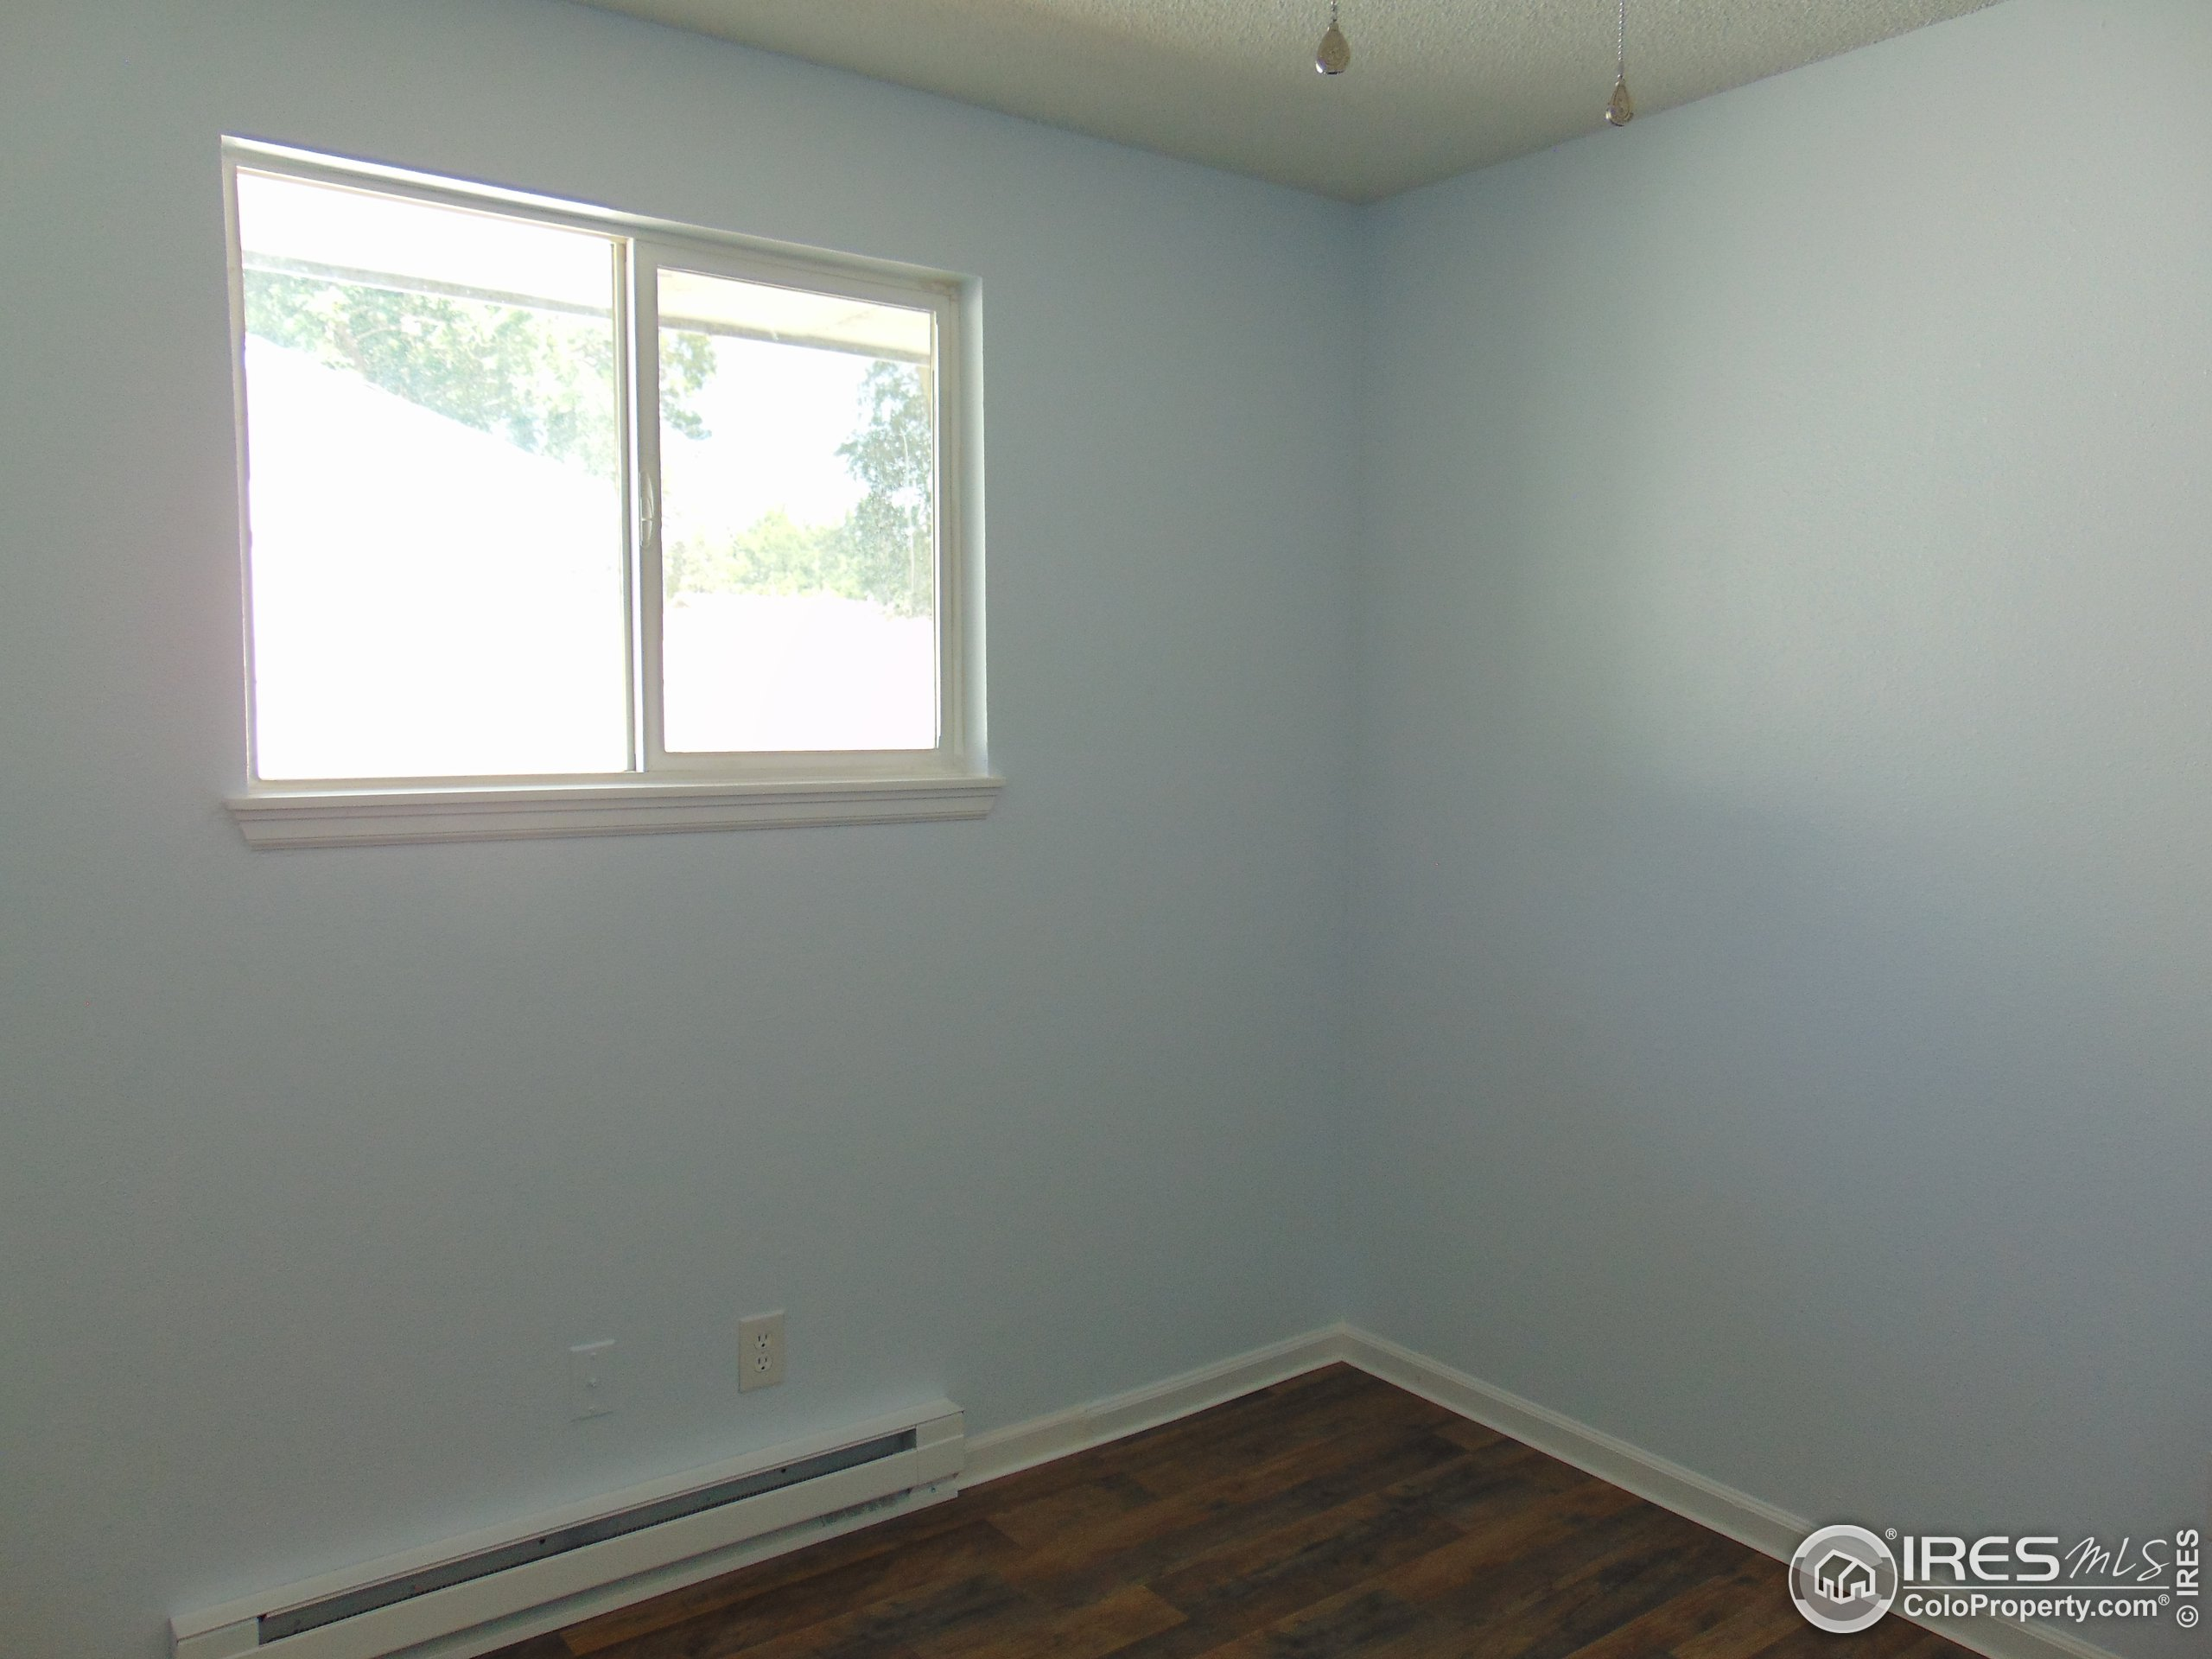 Second bedroom has lots of light with ceiling fan and new enviro friendly heating system